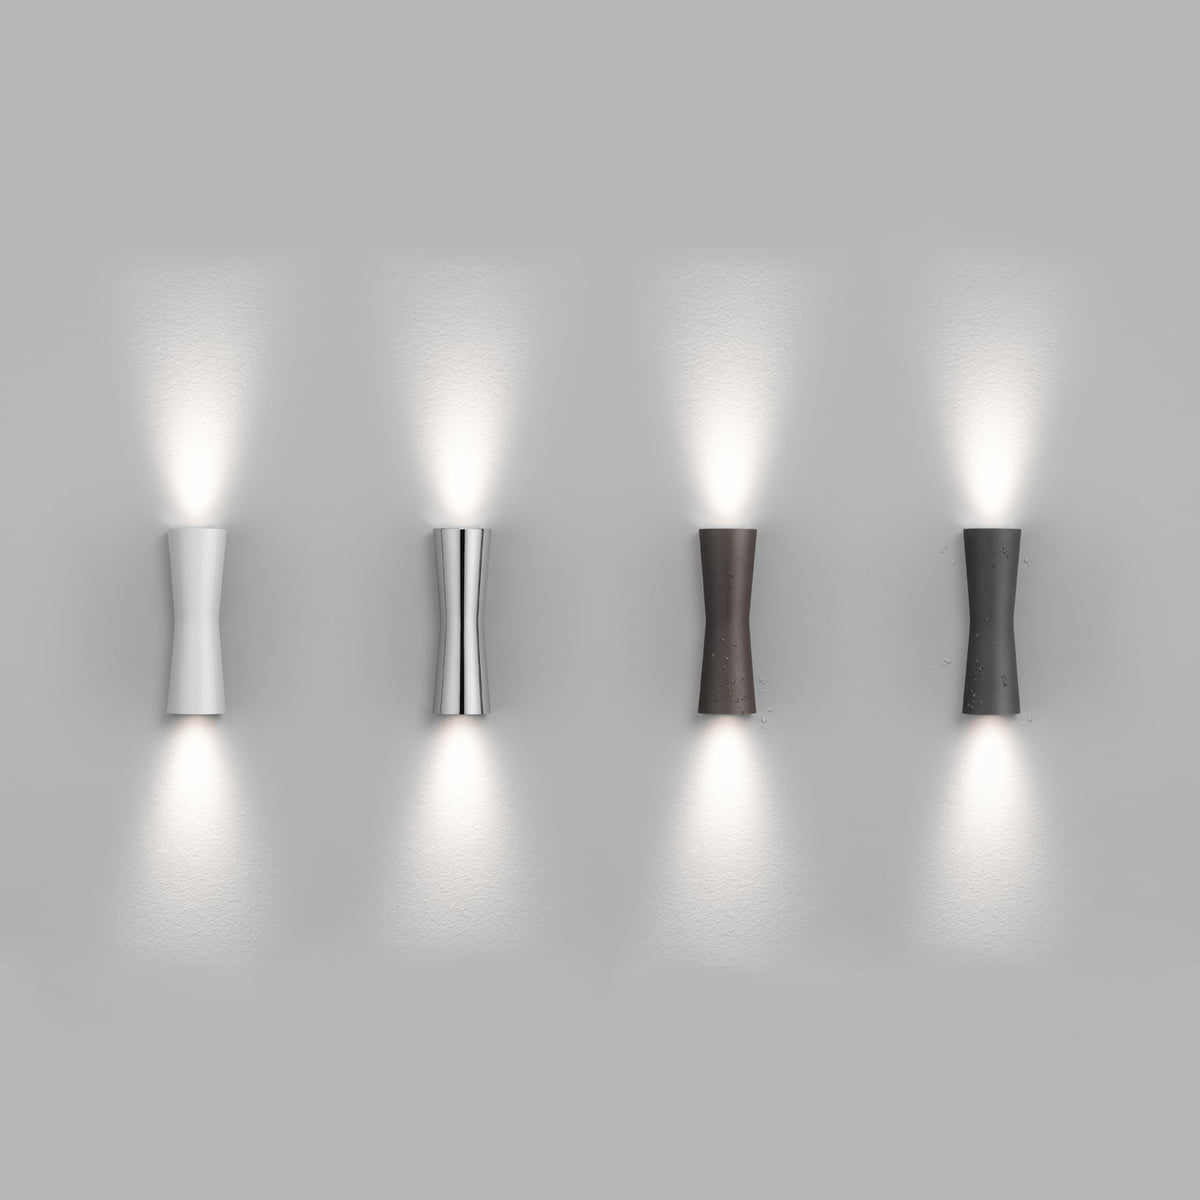 Outdoor Wall Lighting Uk : Lighting.xcyyxh.com